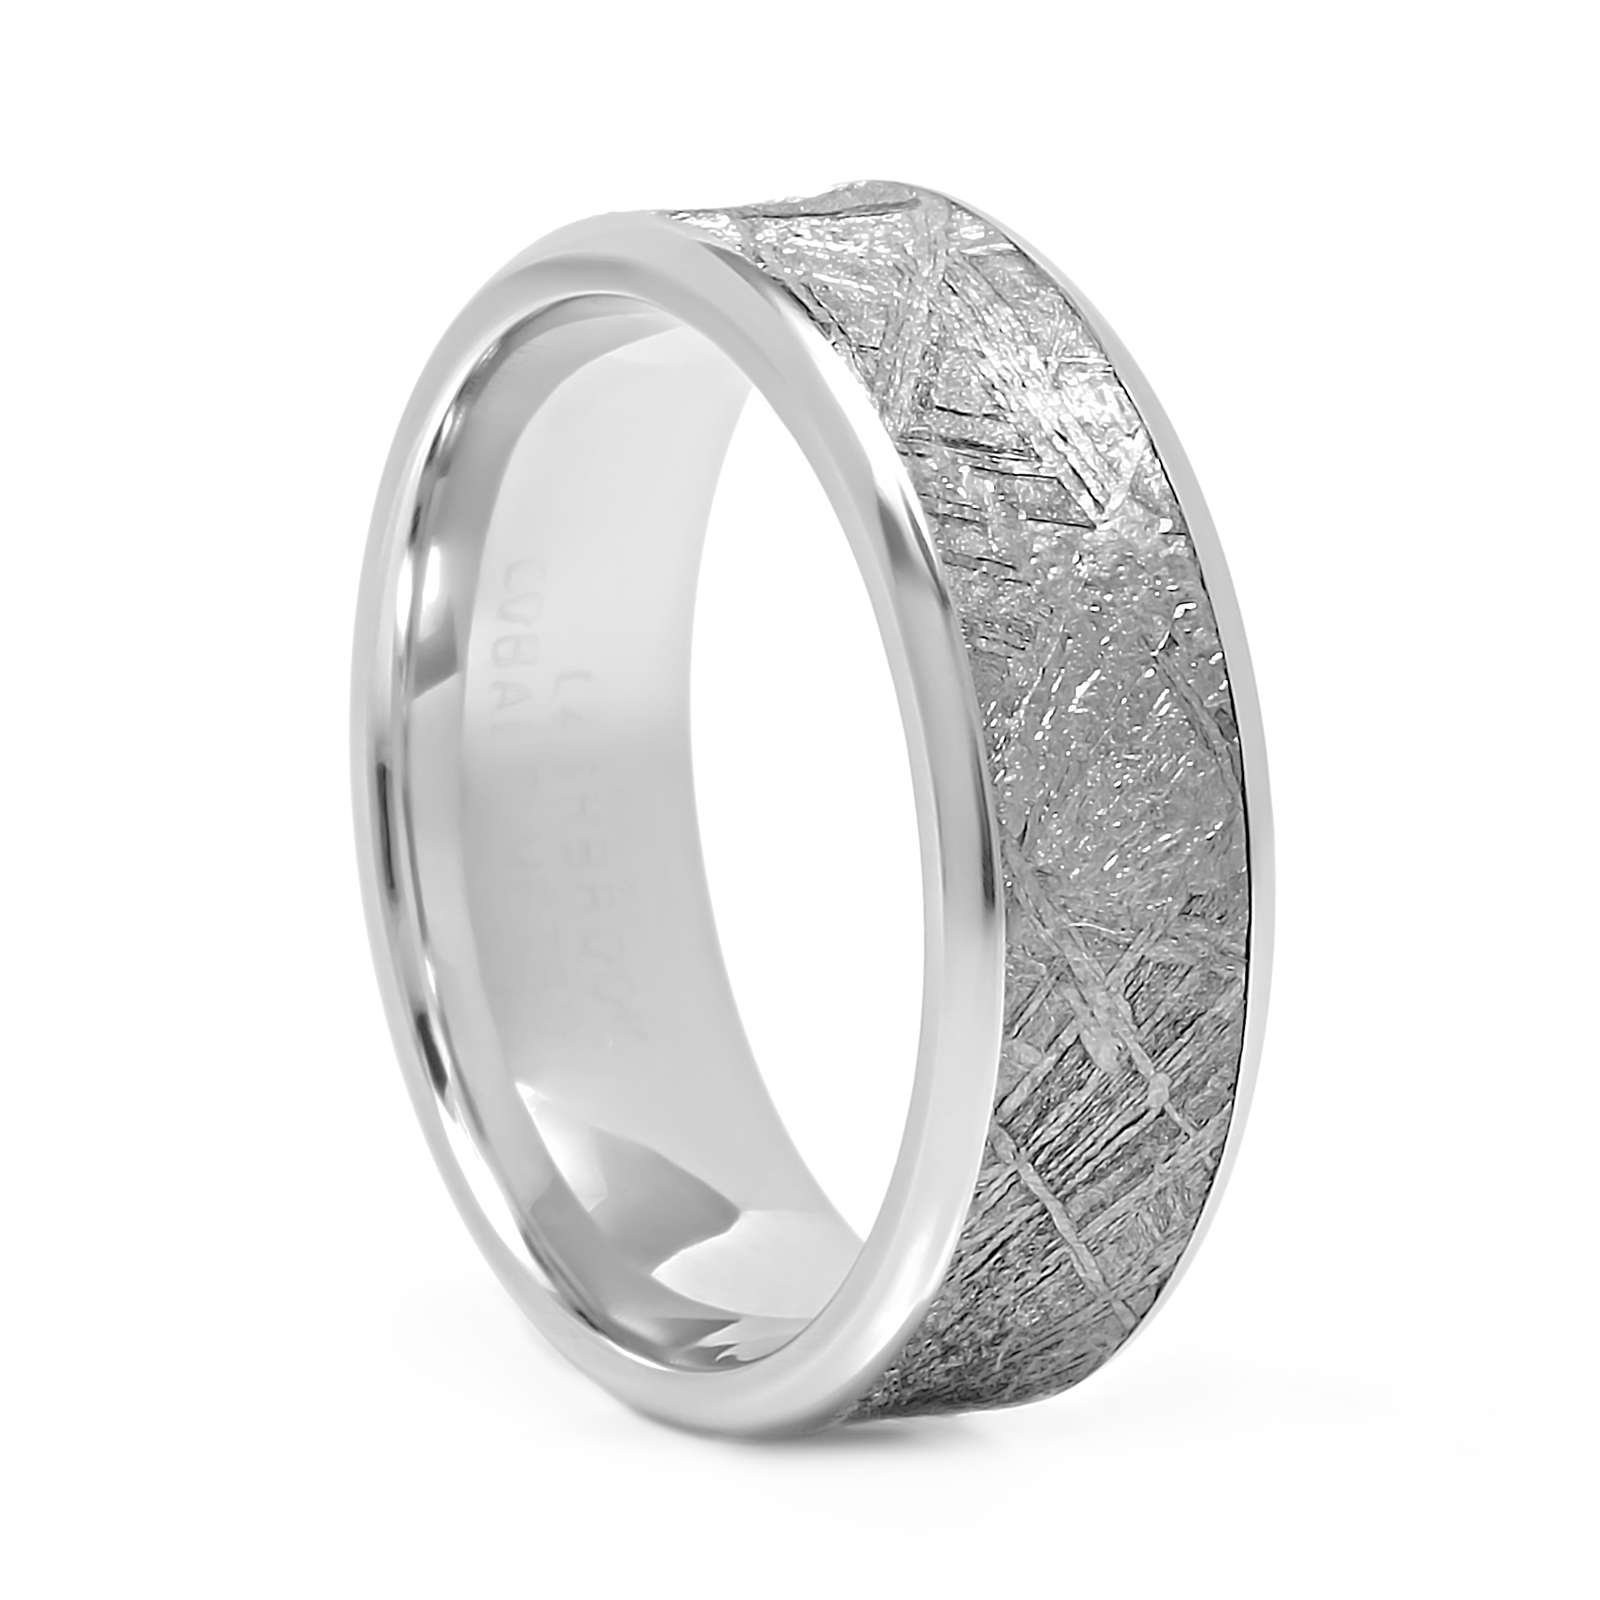 Titanium Tungsten Rings Contemporary Metals for the Modern Man